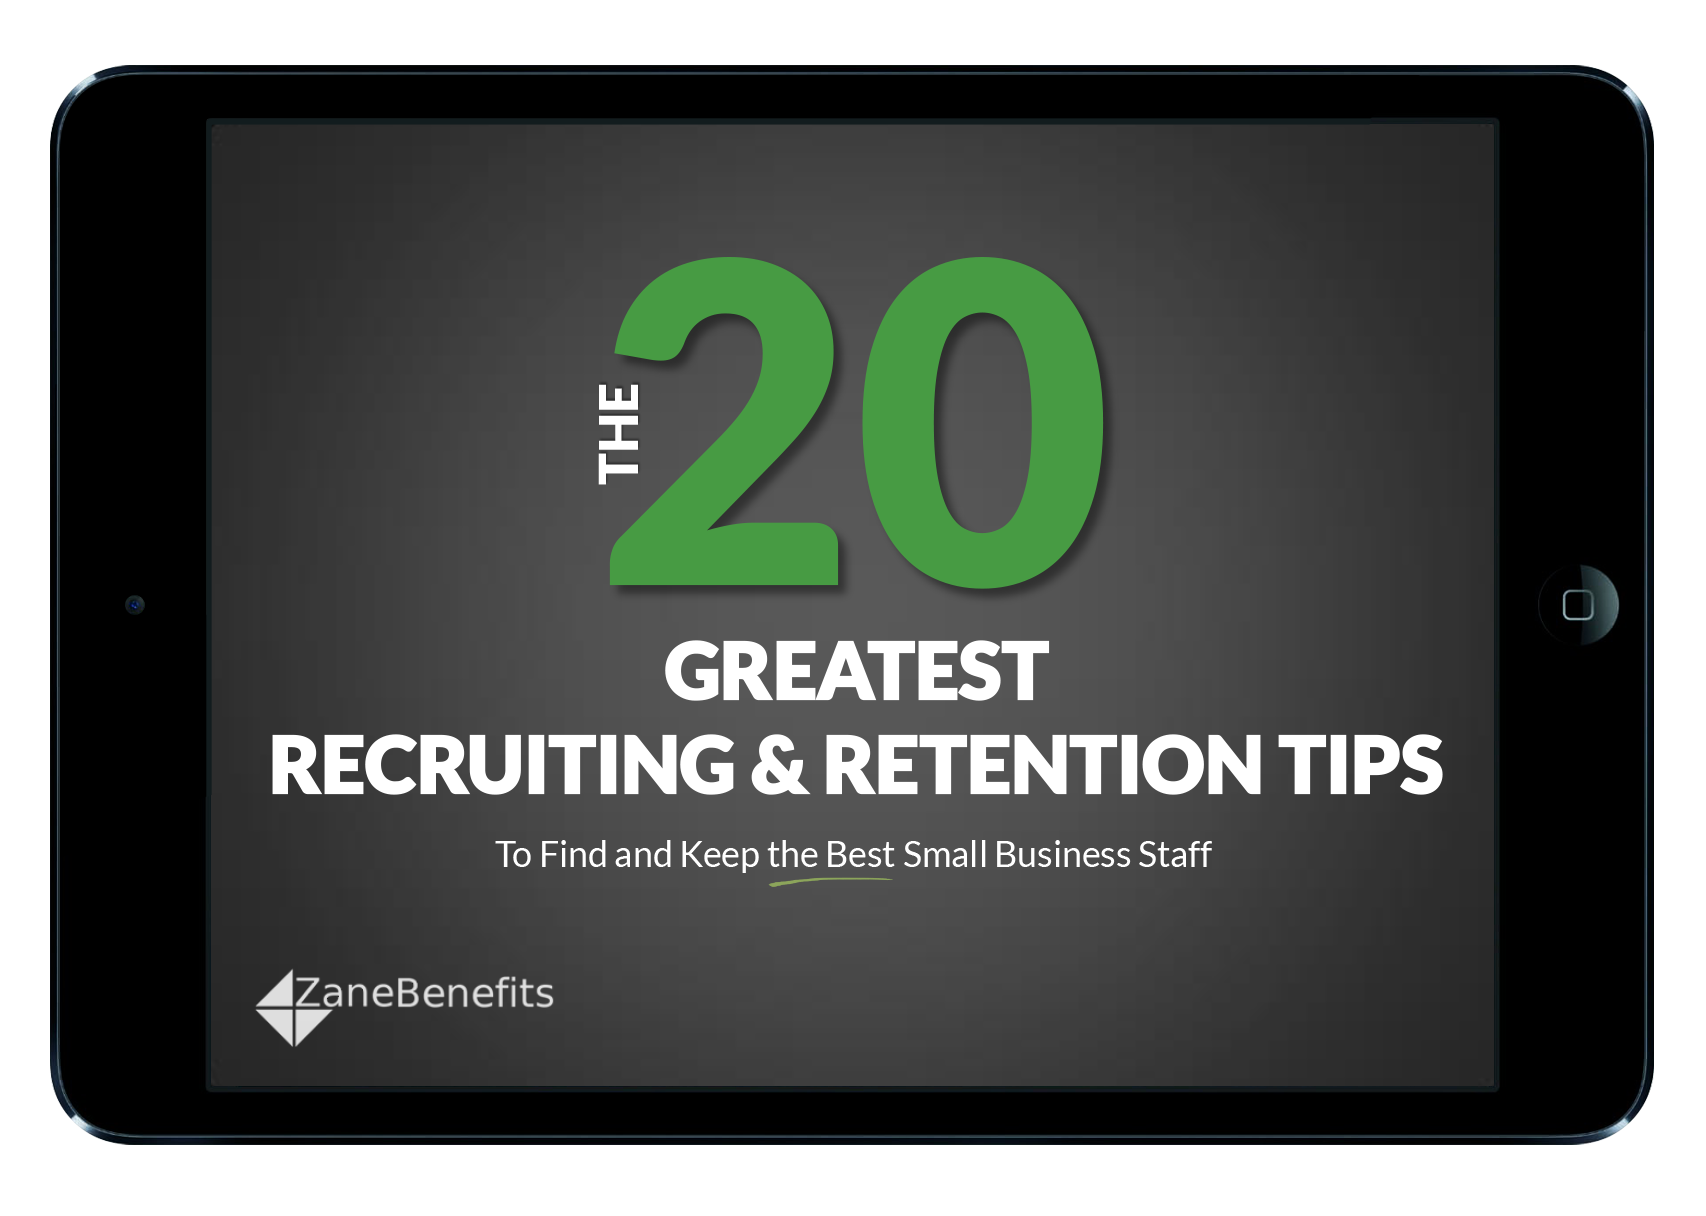 The 20 Greatest Recruiting & Retention Tips